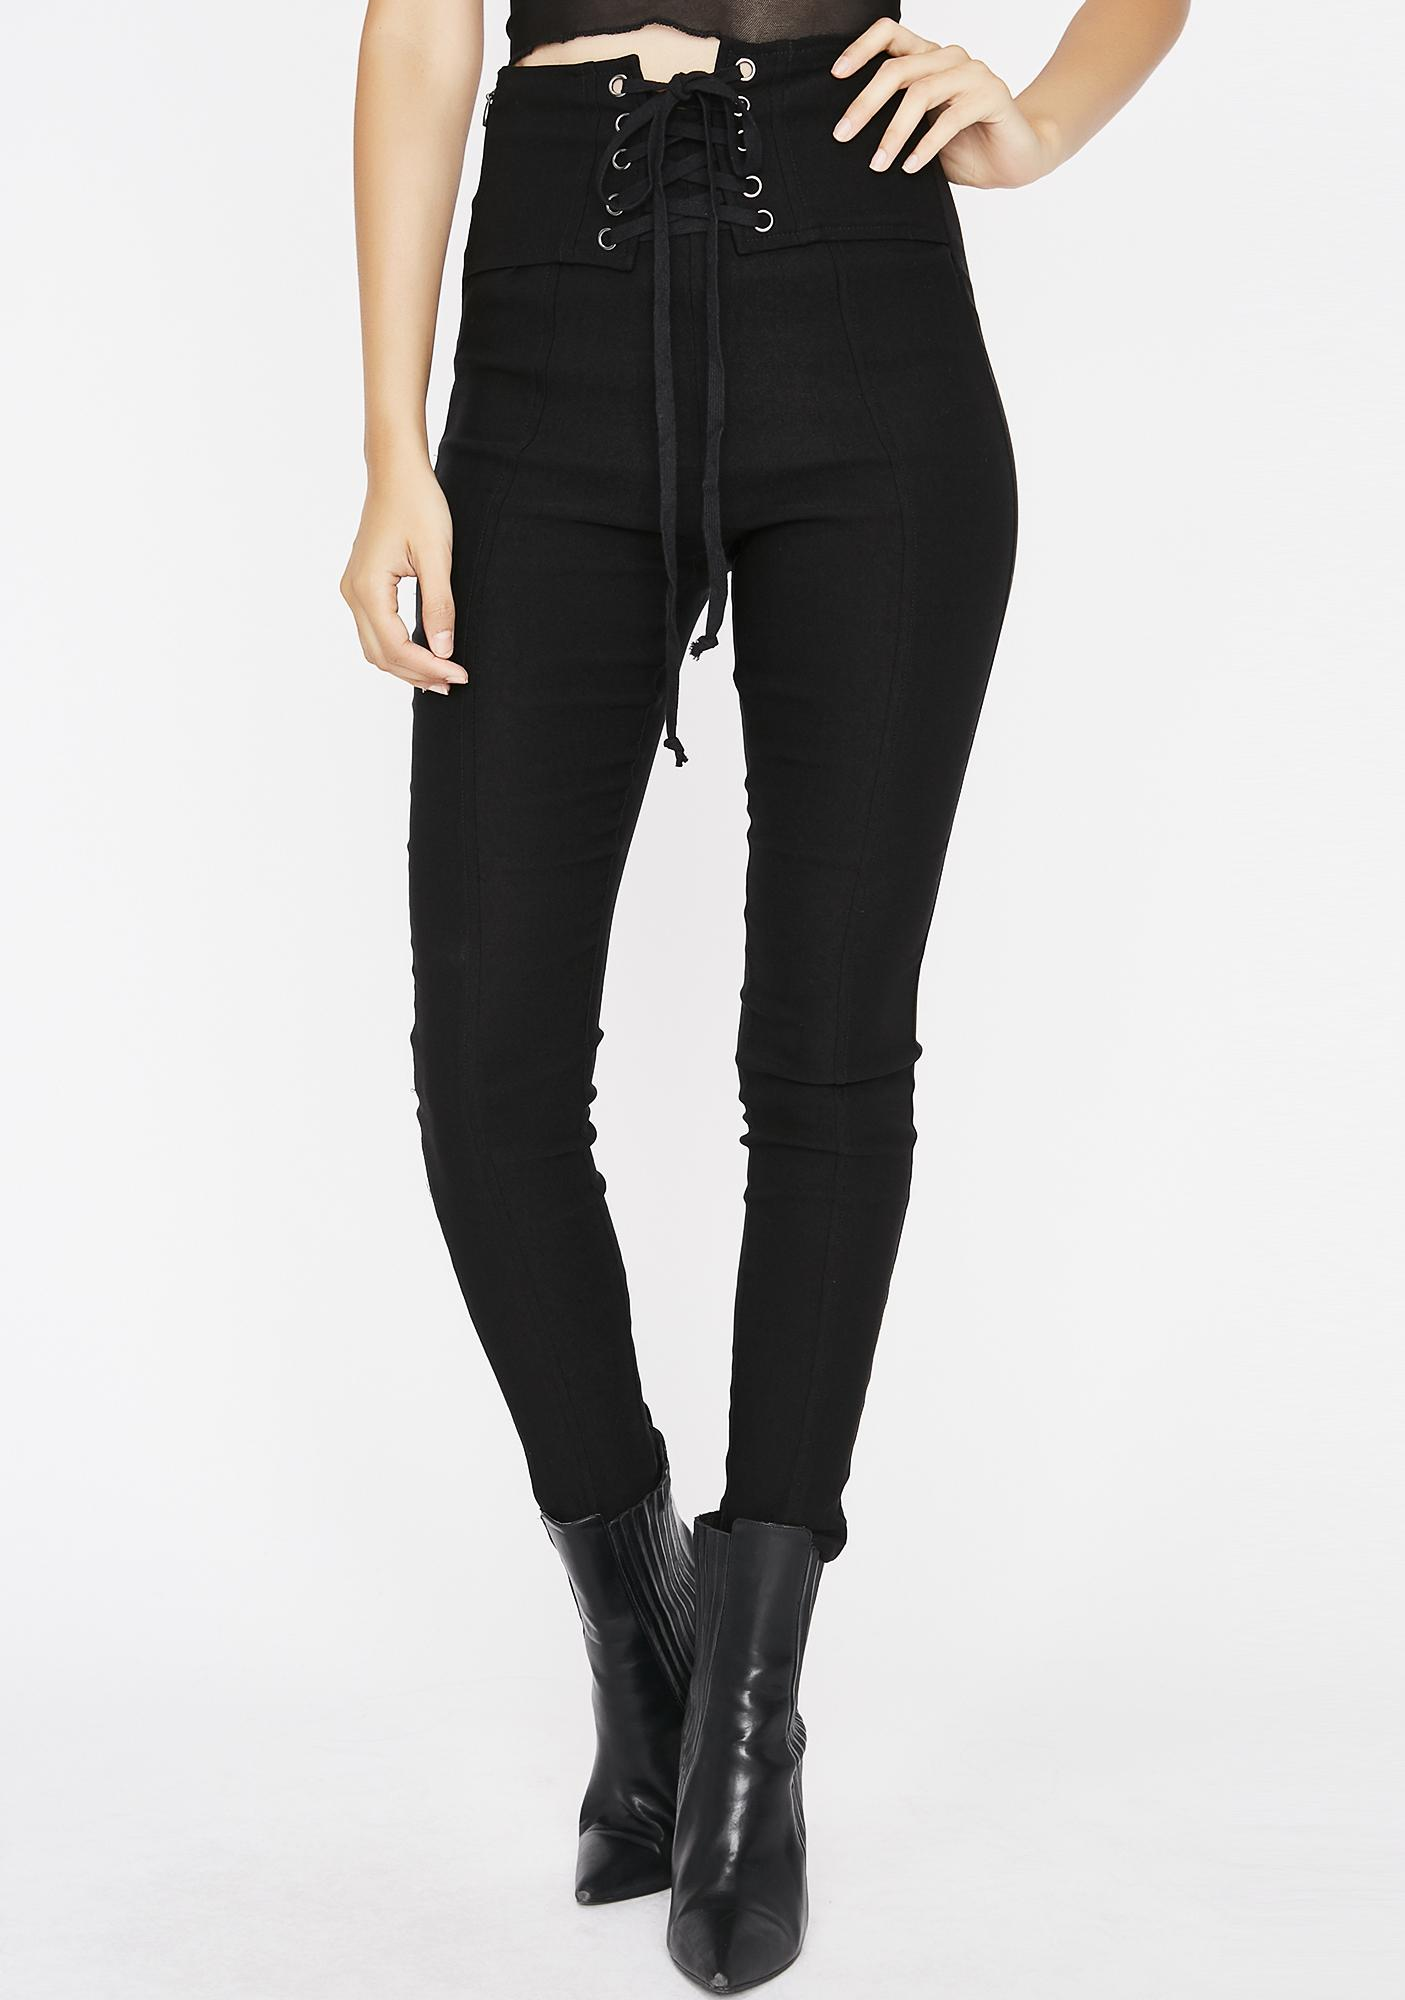 Pot Stirrer Lace-Up Leggings